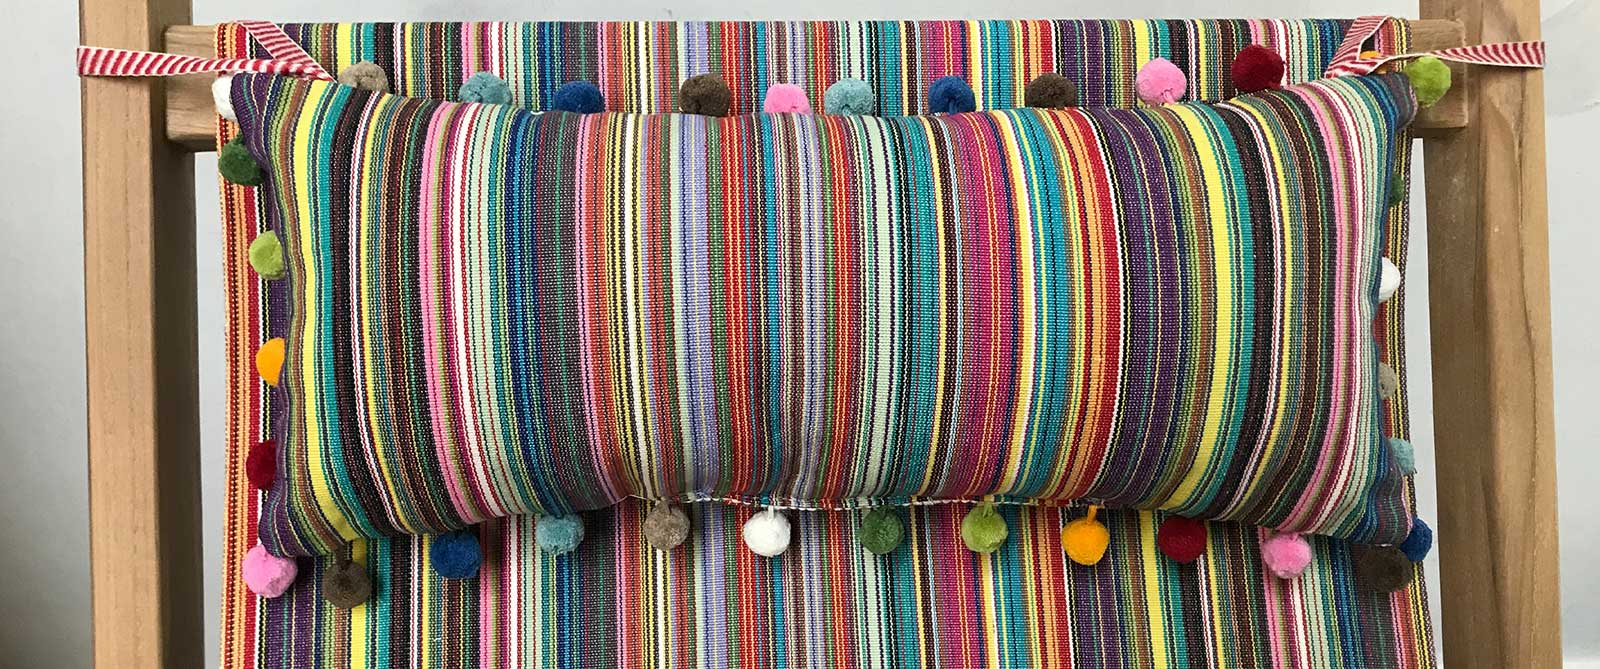 Deckchair Headrest Cushions | Tie on Pompom Headrest Pillow